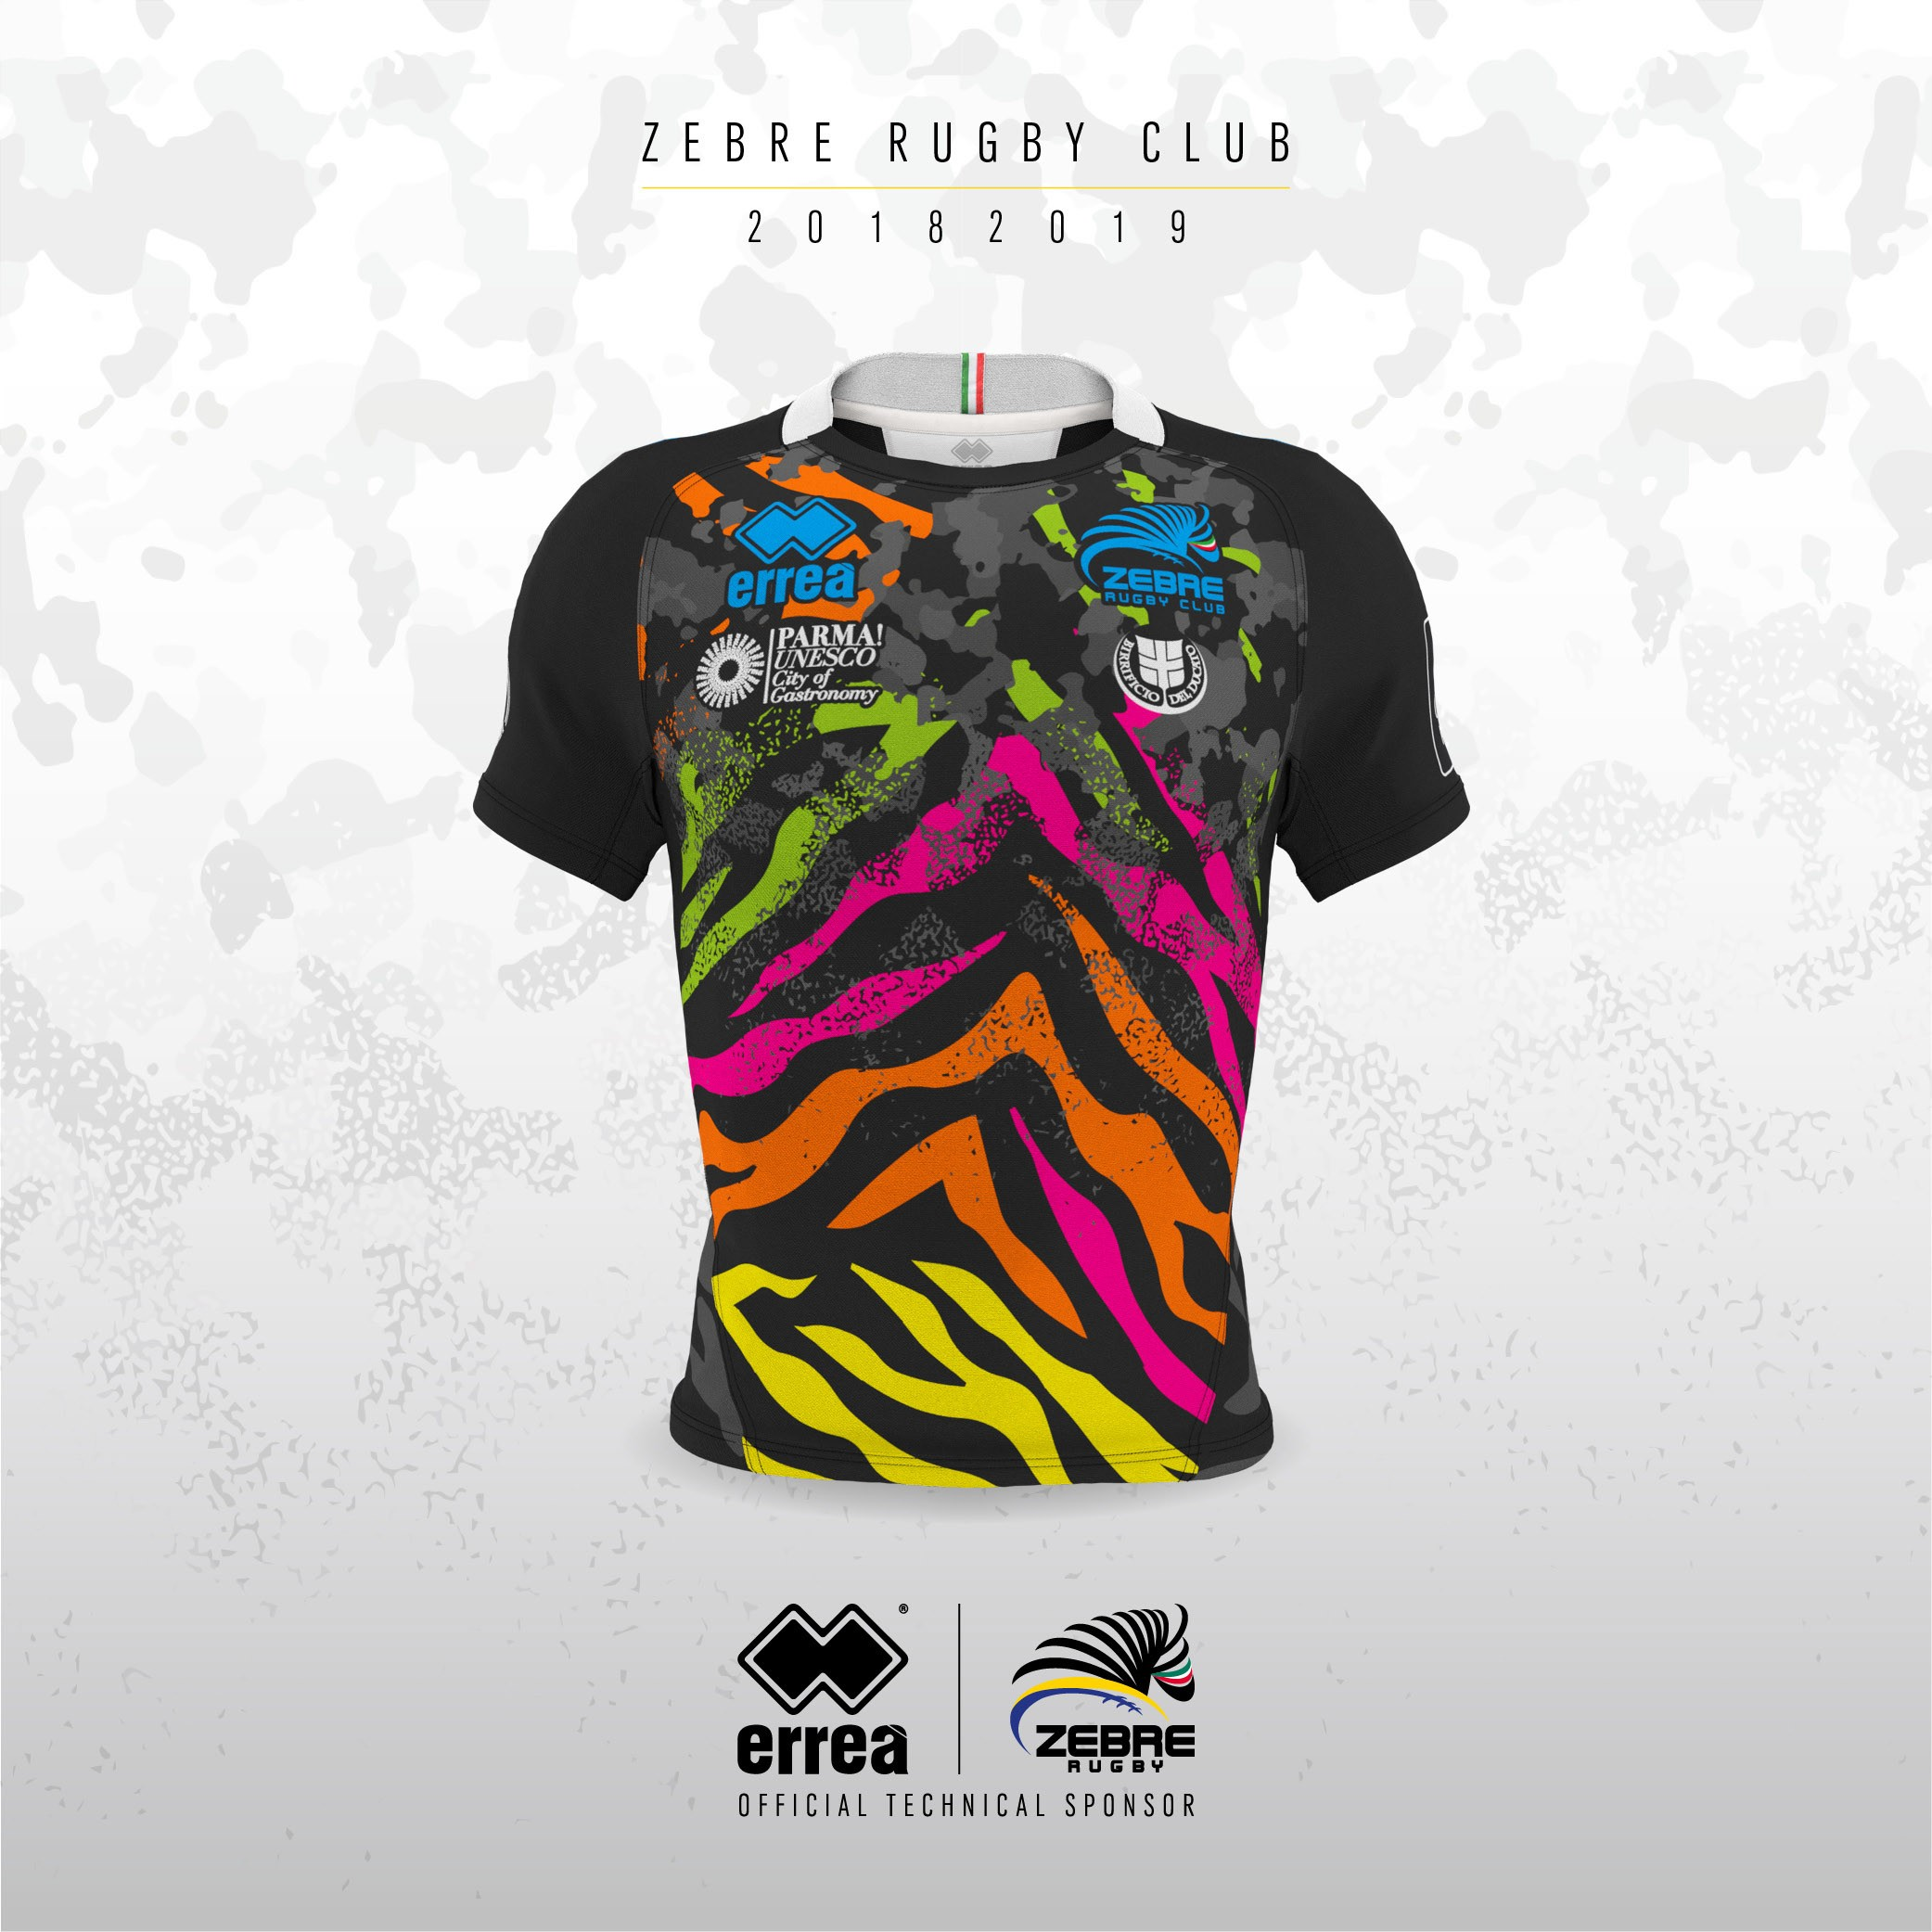 Glasgow hosts the presentation of the Guinness Pro 14: Zebre unveil their new first team kit